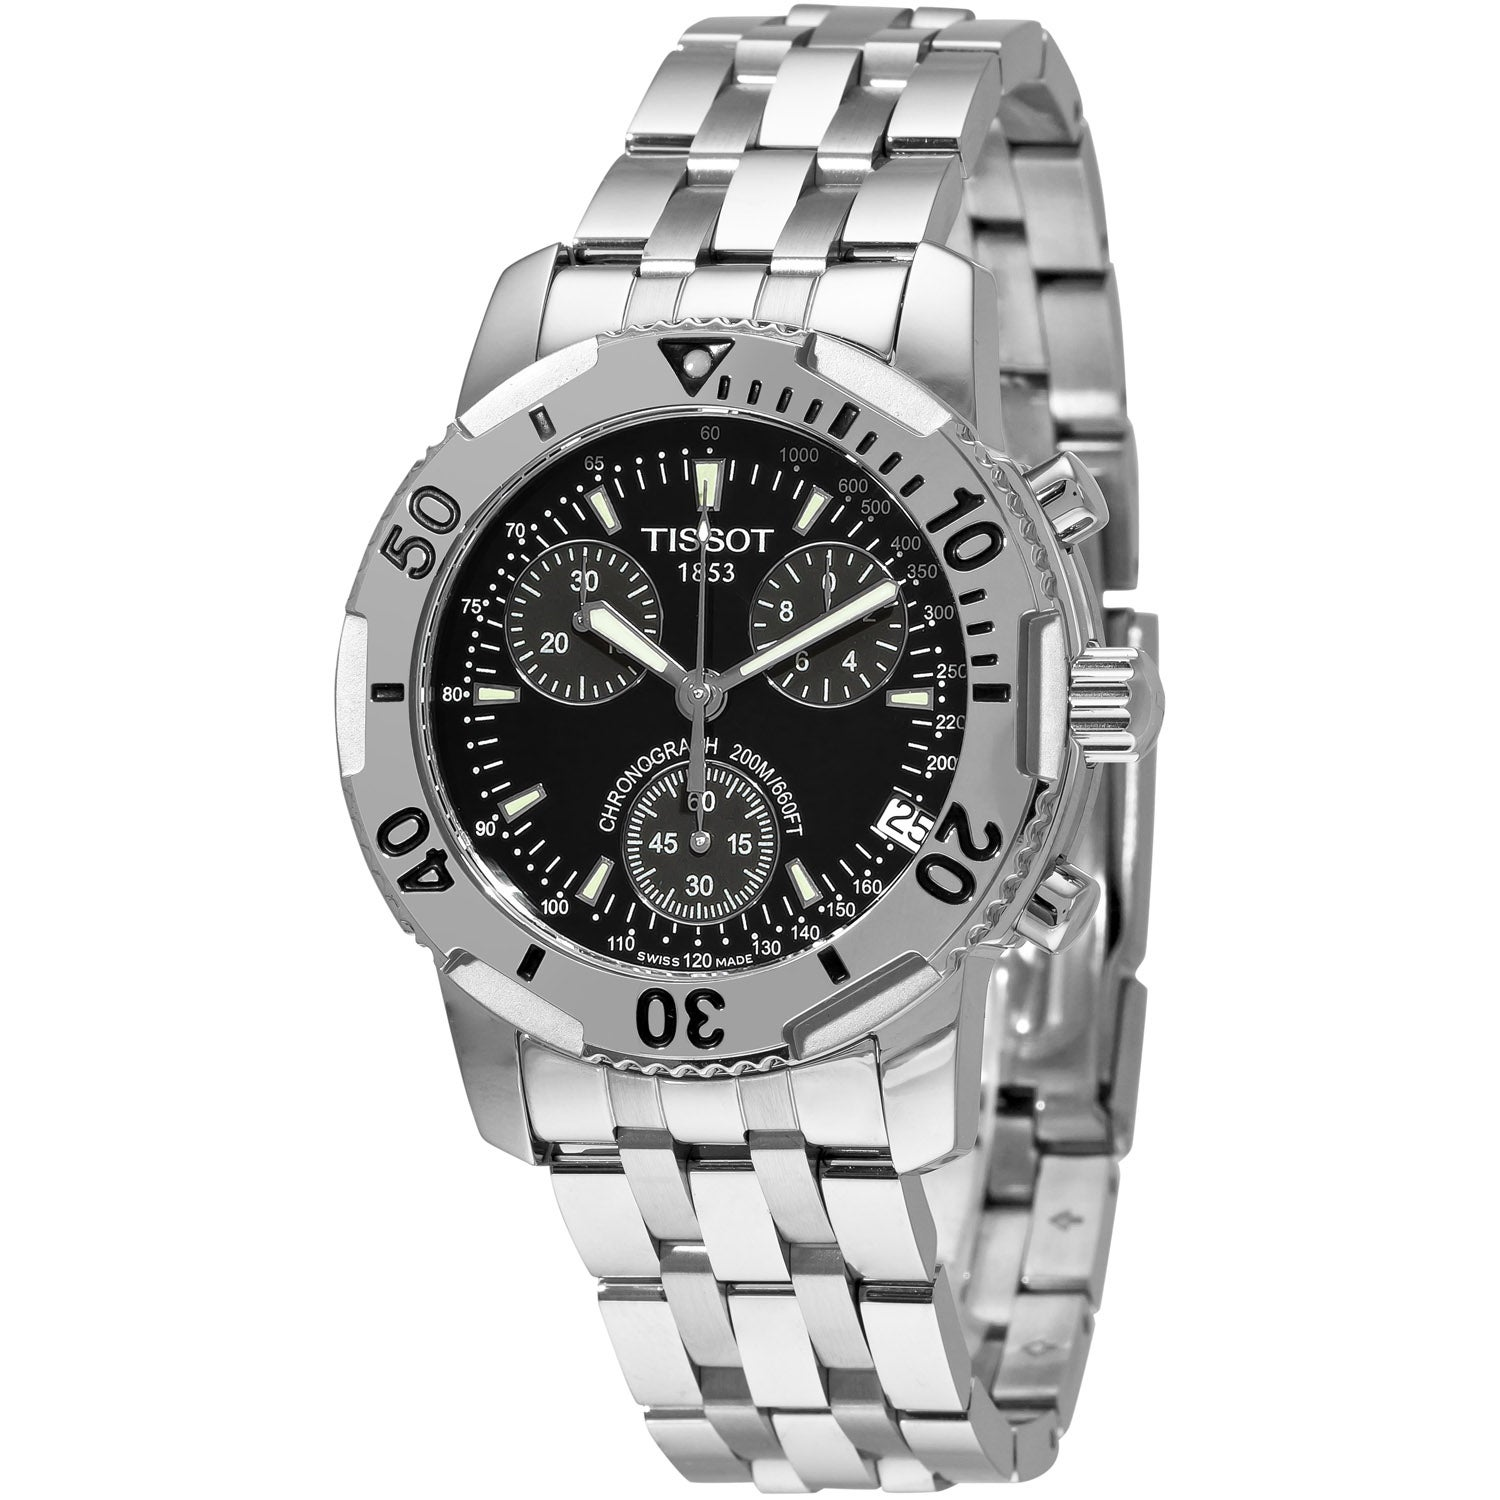 Tissot Men's 'PRS 200' Black Dial Chronograph Stainless Steel Watch